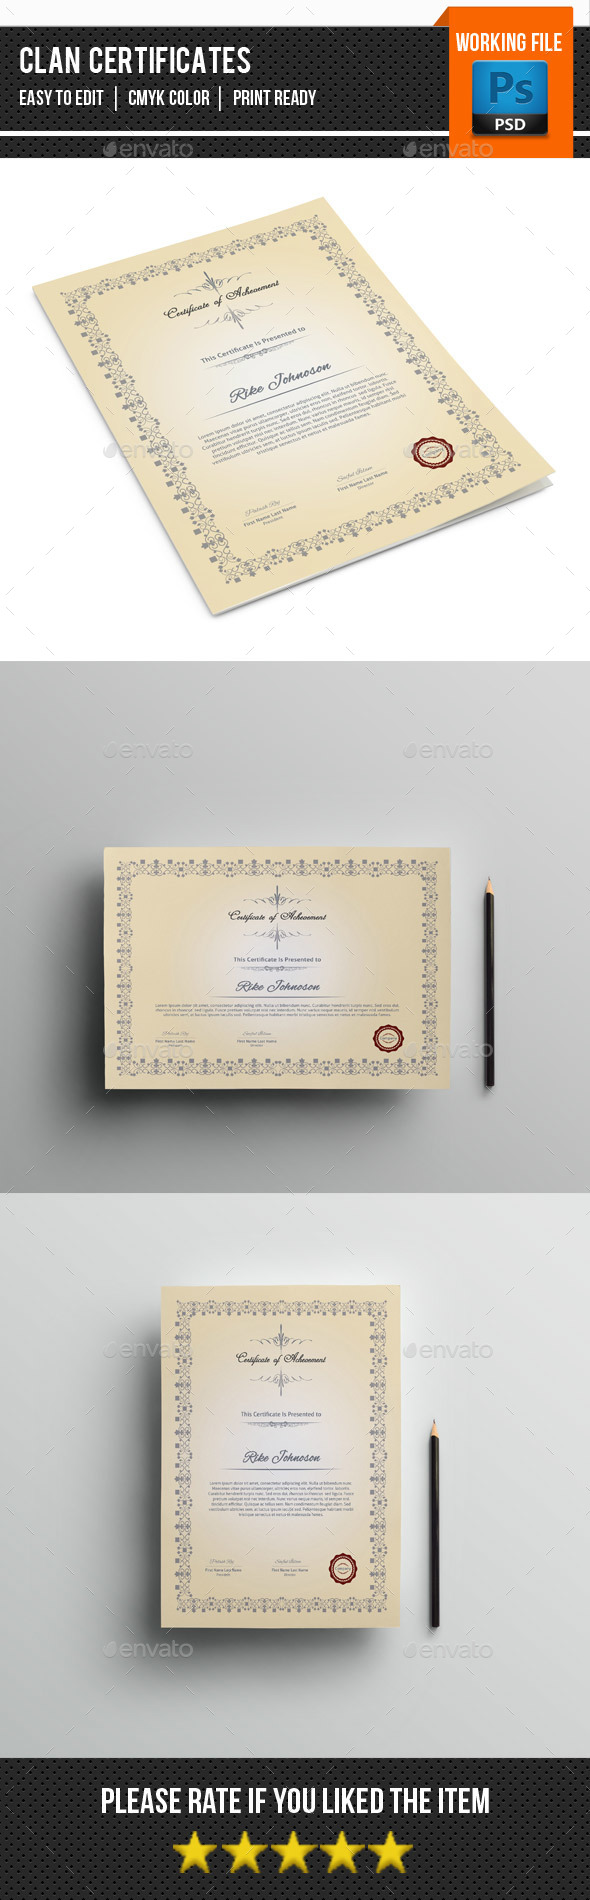 Multipurpose Certificate Template-V02 - Certificates Stationery